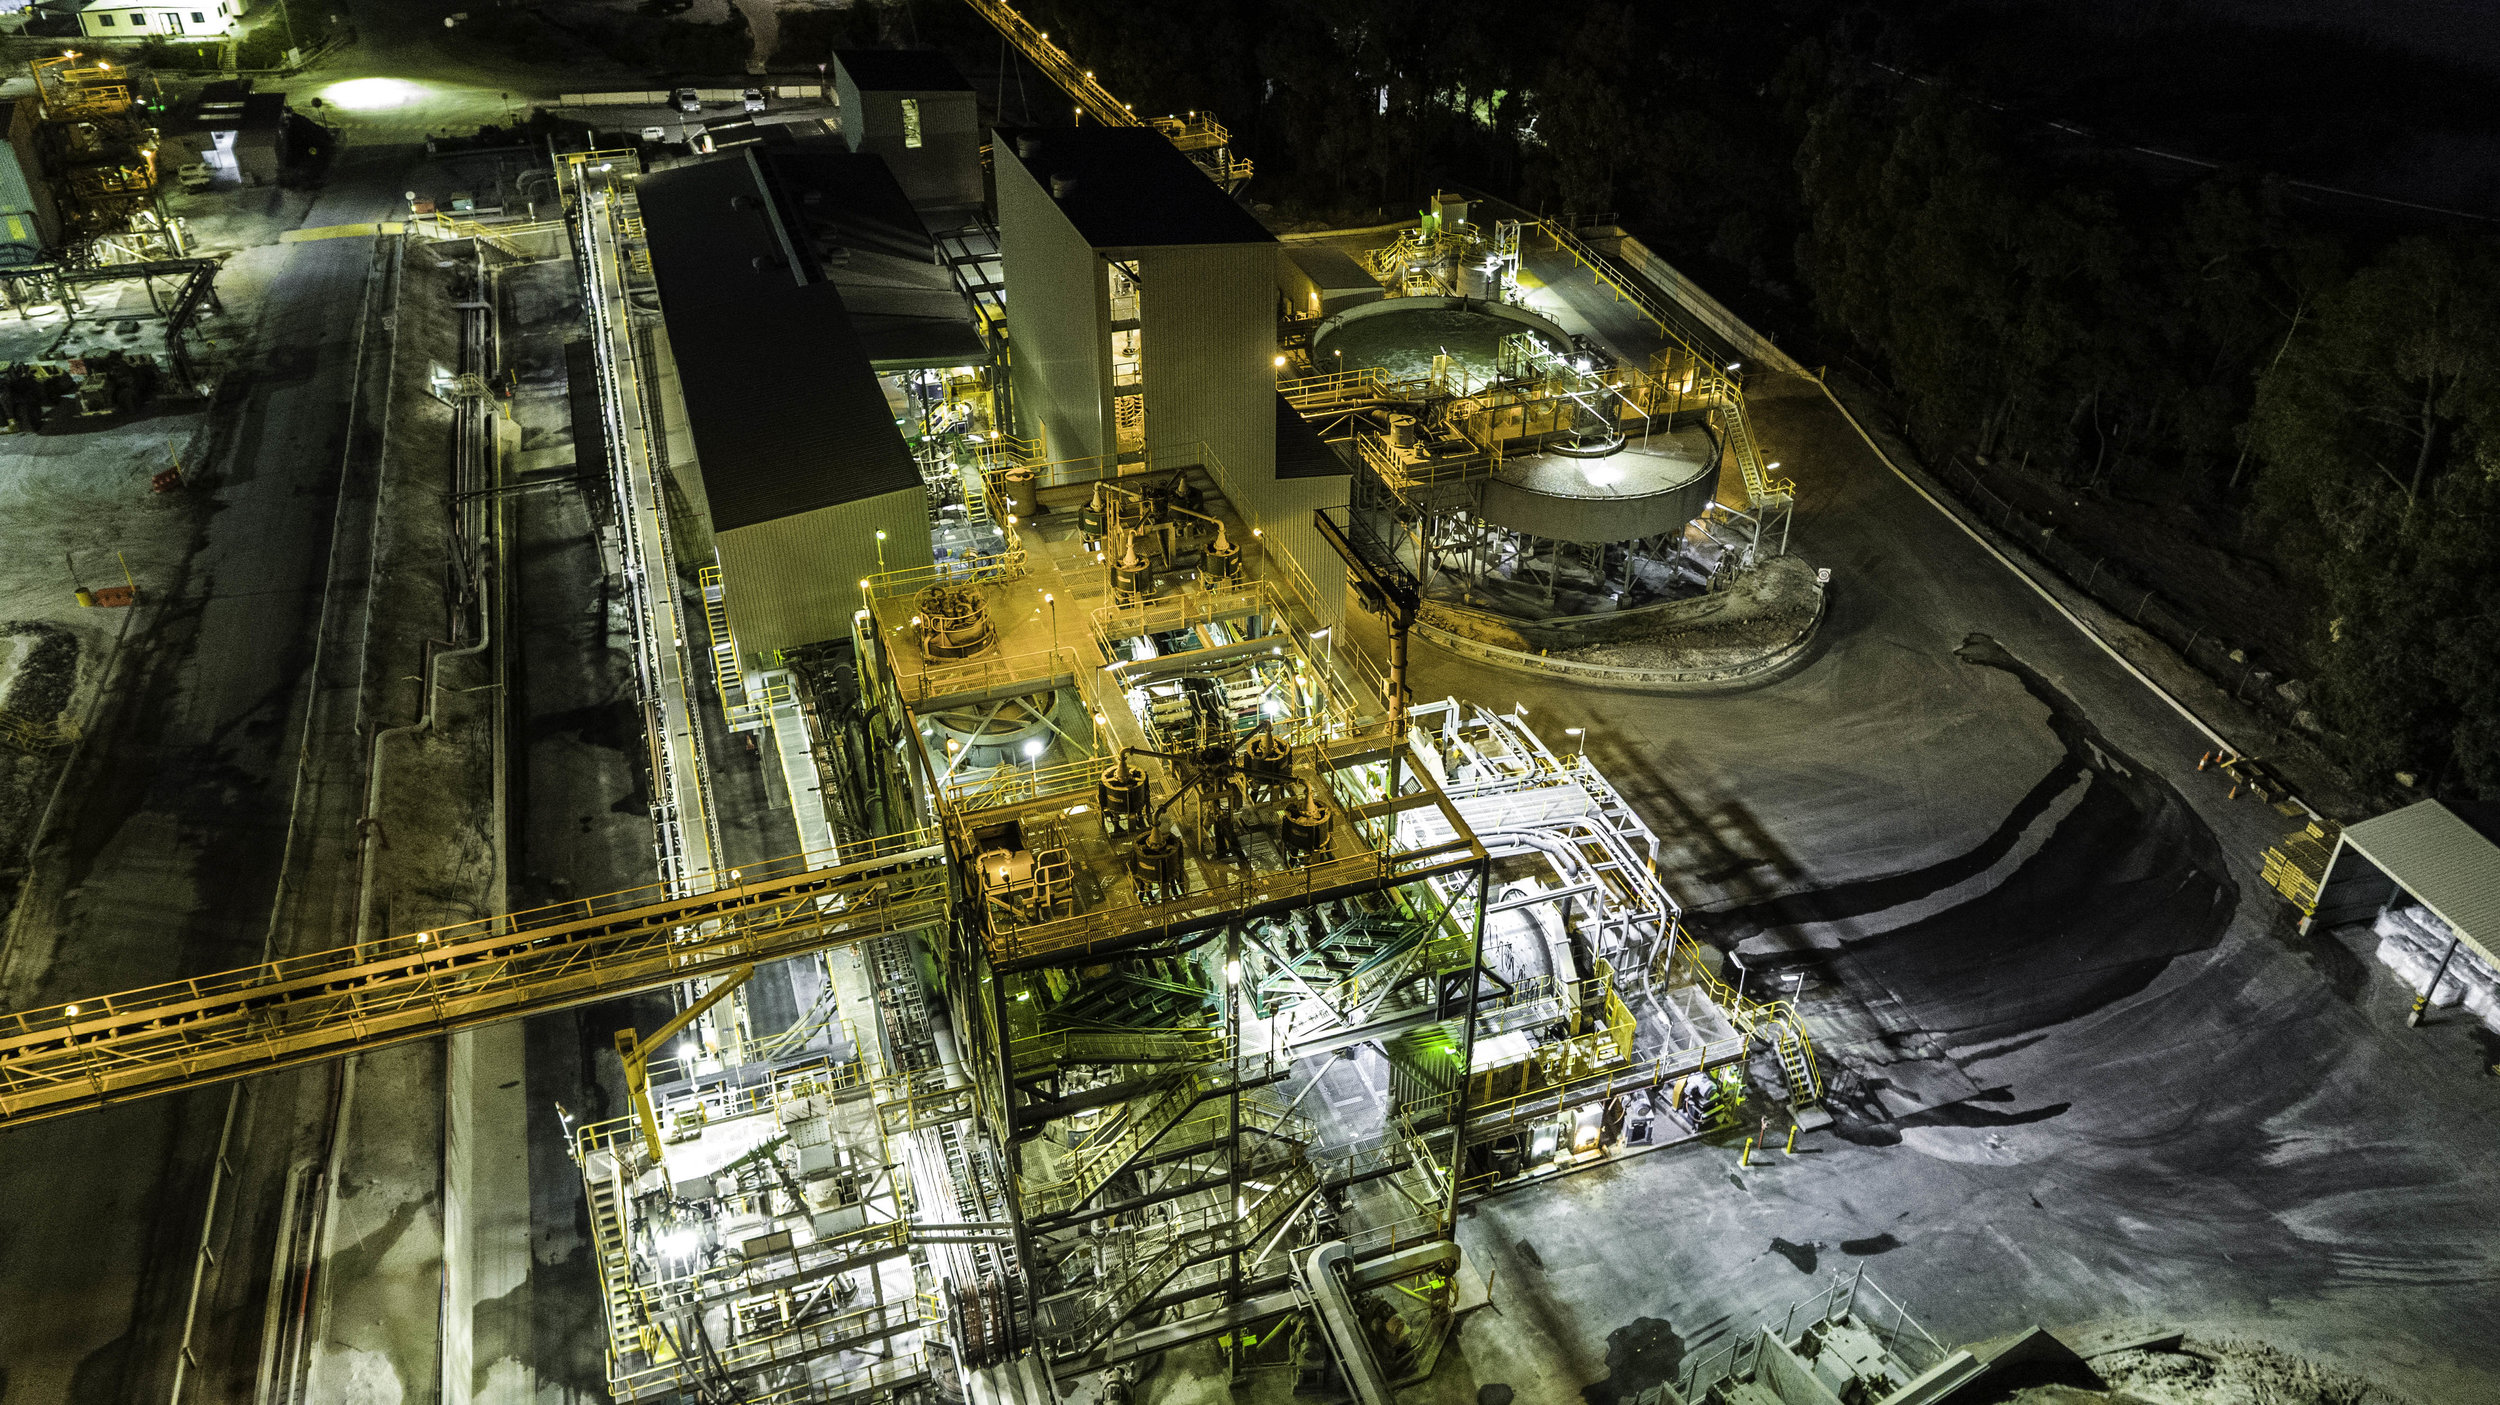 Talison Lithium CGP1 aerial view at night lower res.jpg